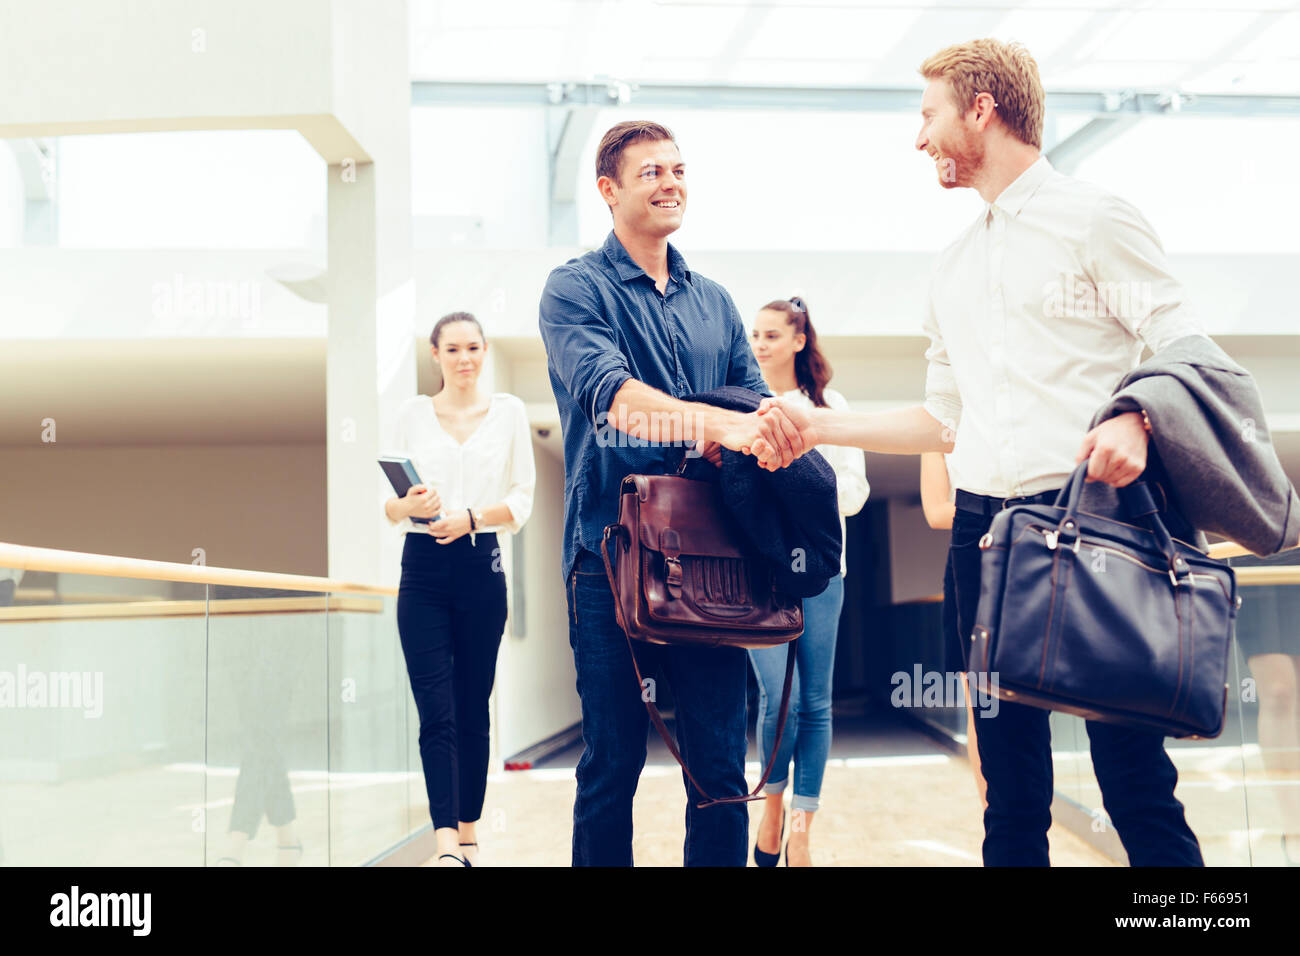 Businessmen shaking hands and greeting each other cheerfully - Stock Image